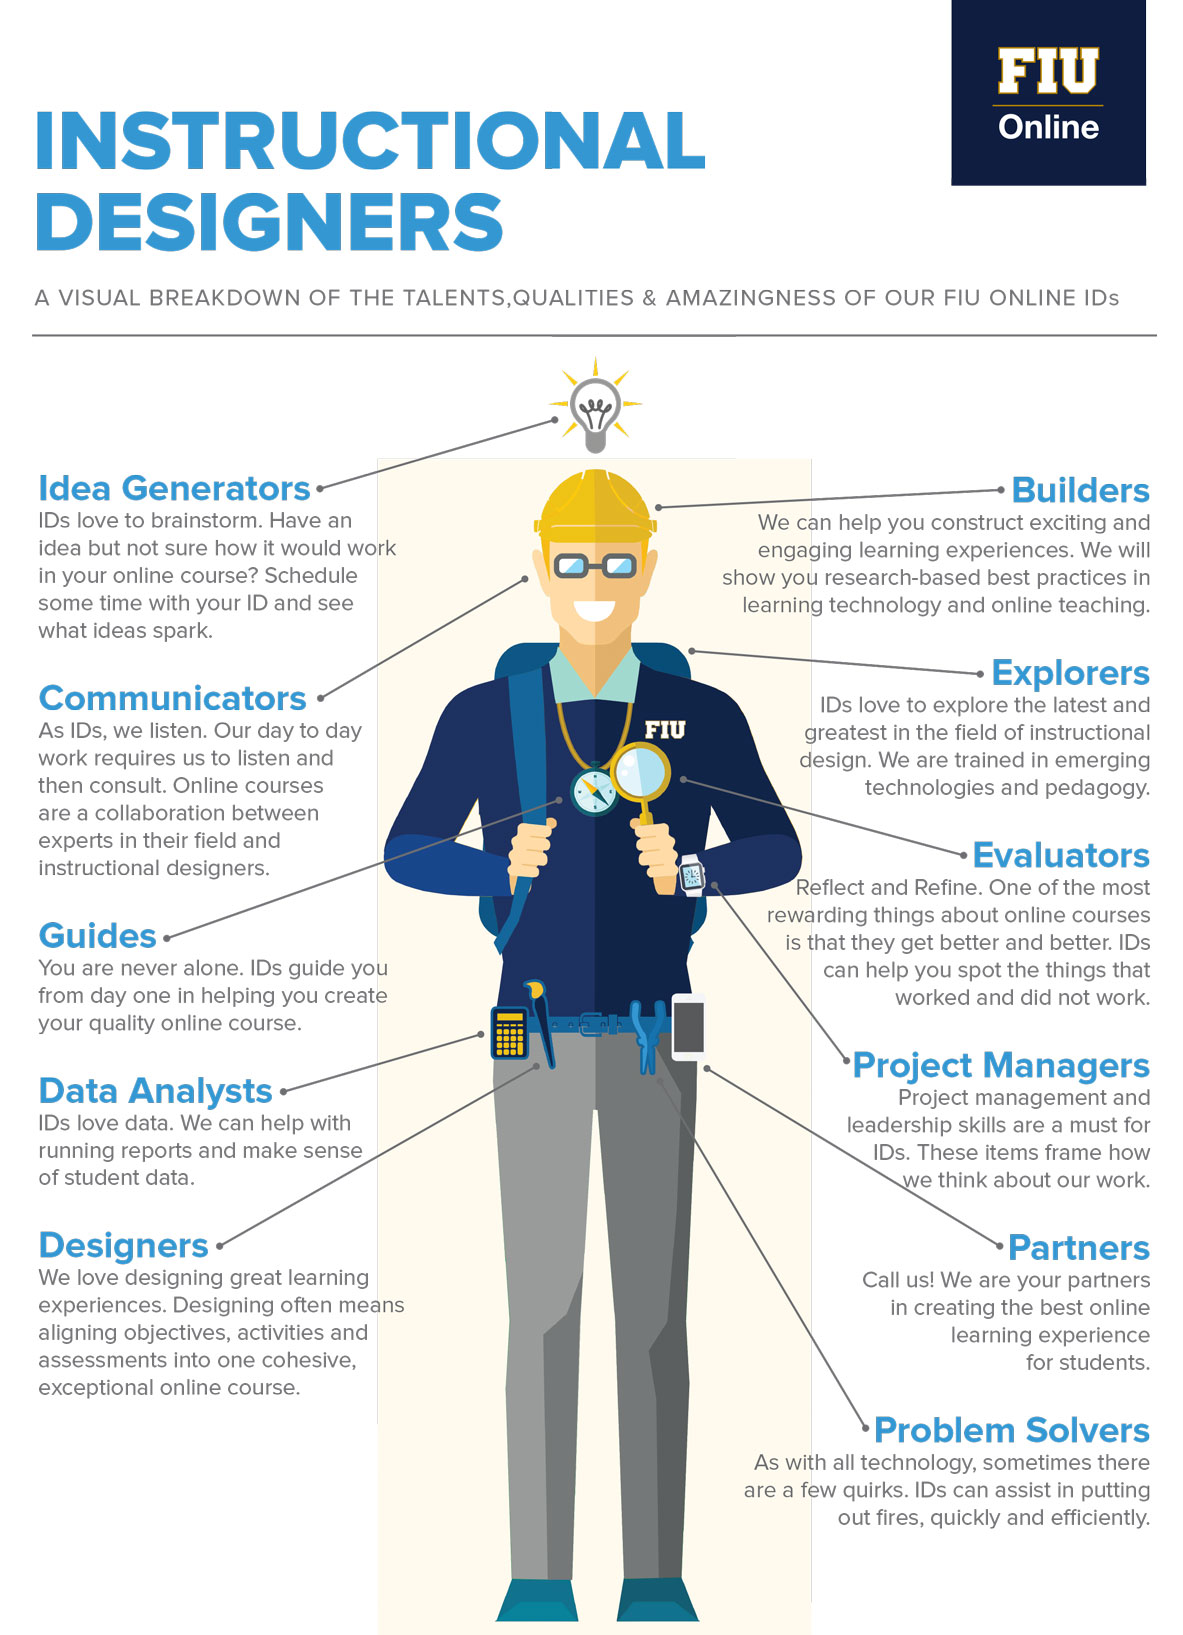 Fiu Online Instructional Designers Infographic Online Insider